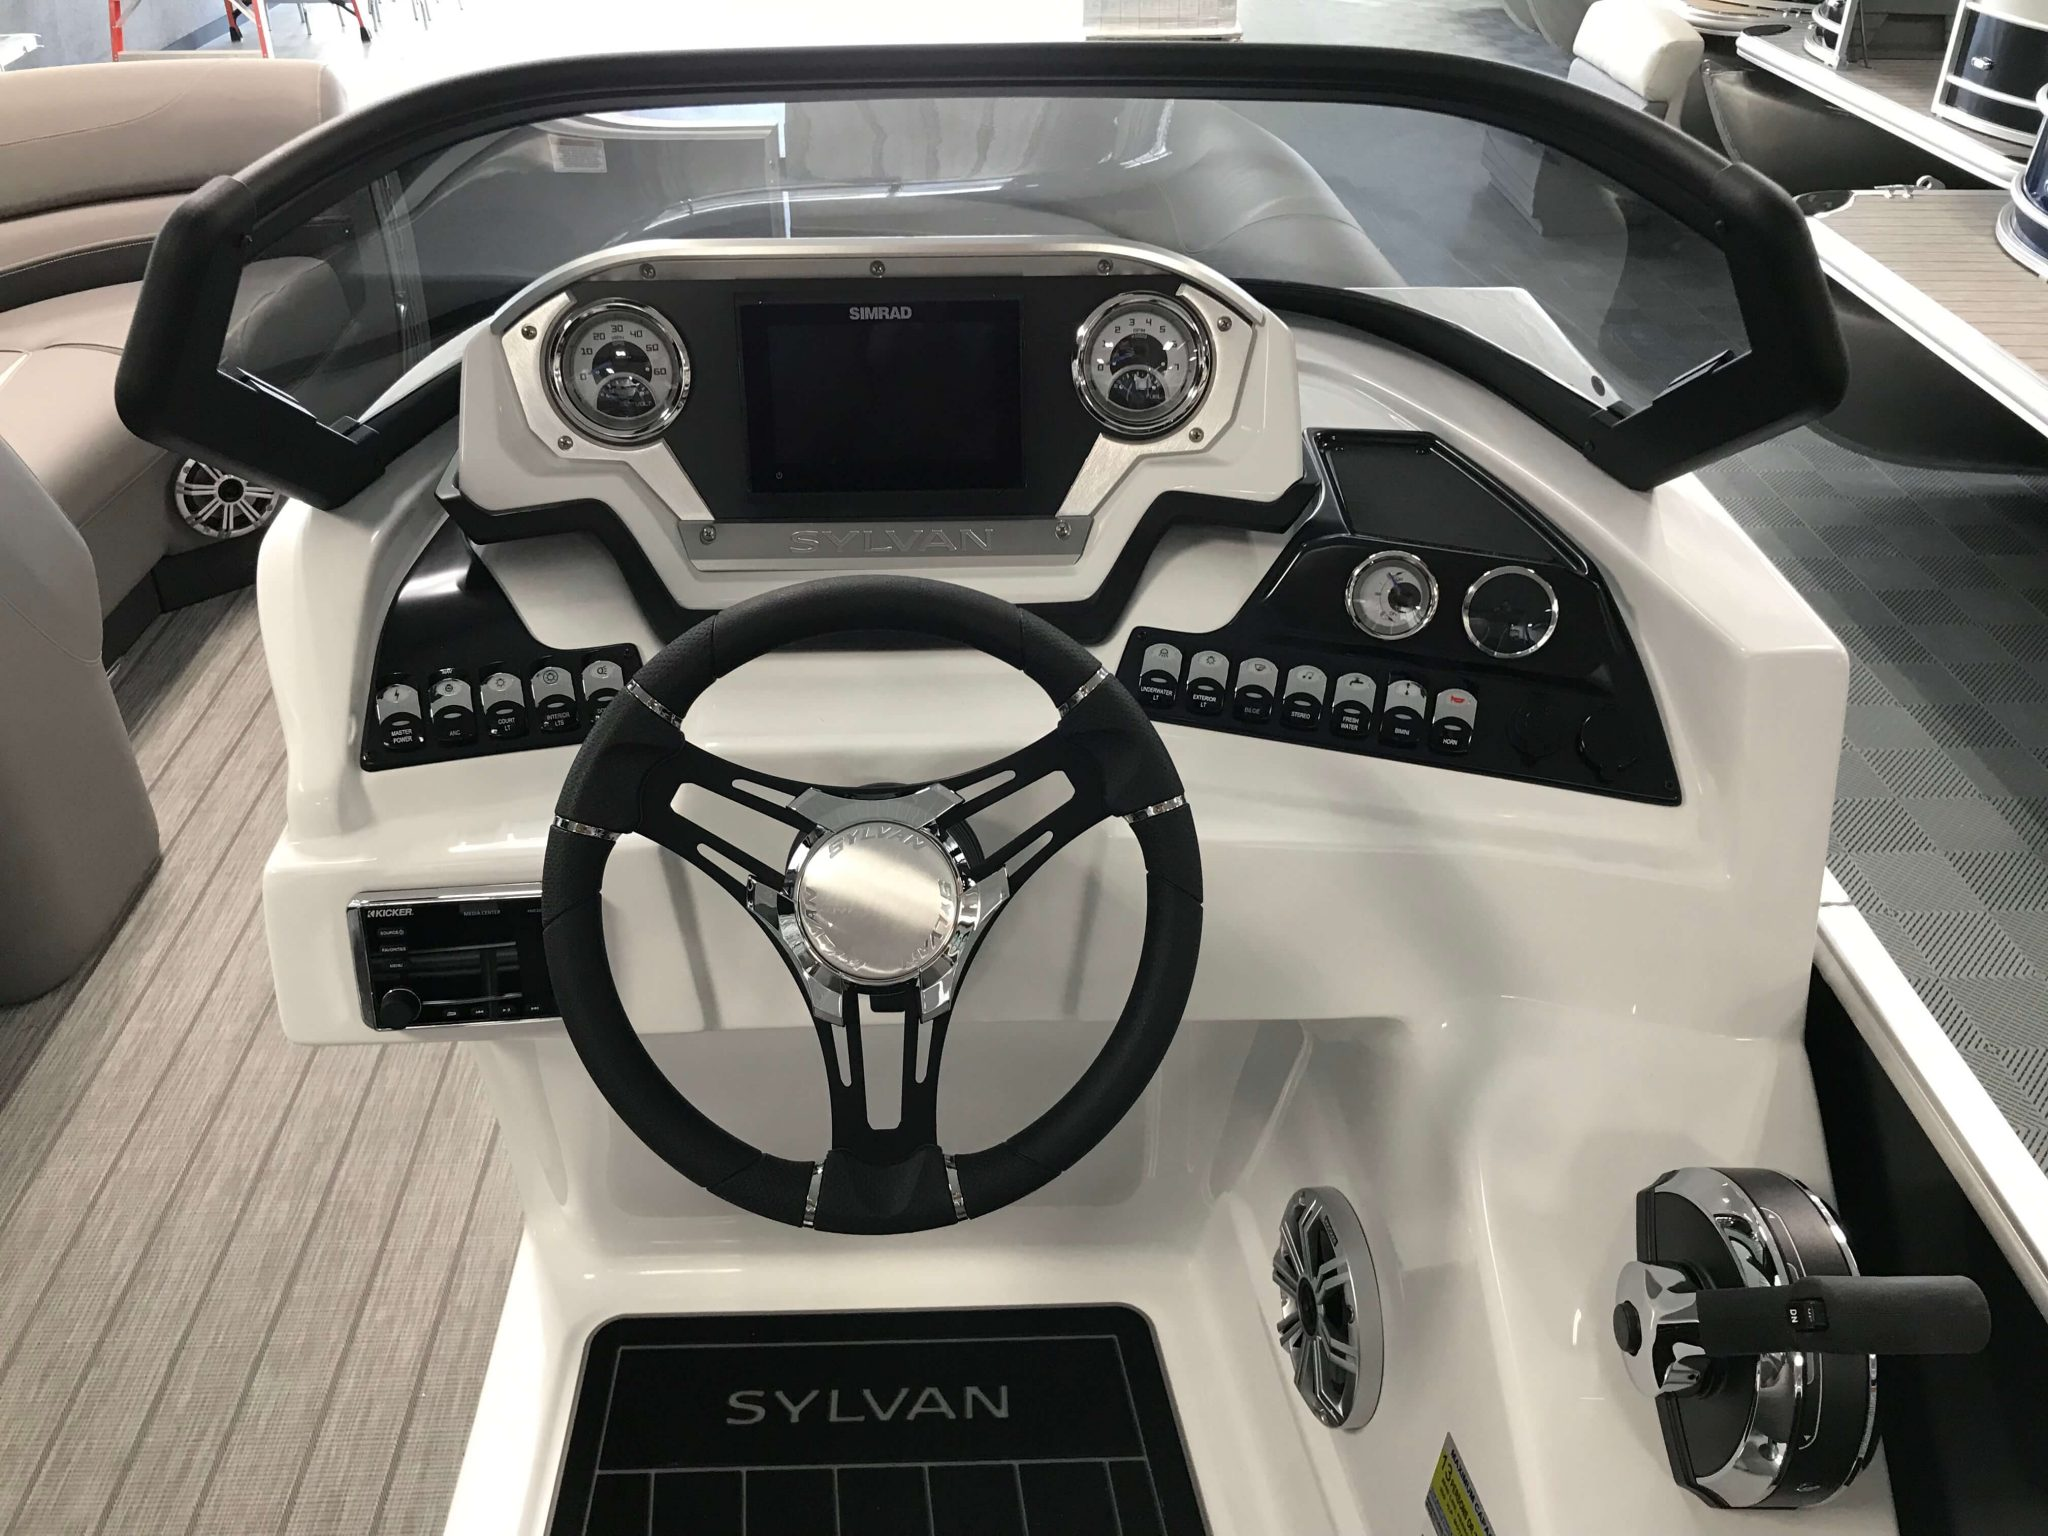 2019 Sylvan S3 LZ Tritoon Helm And Dash 3